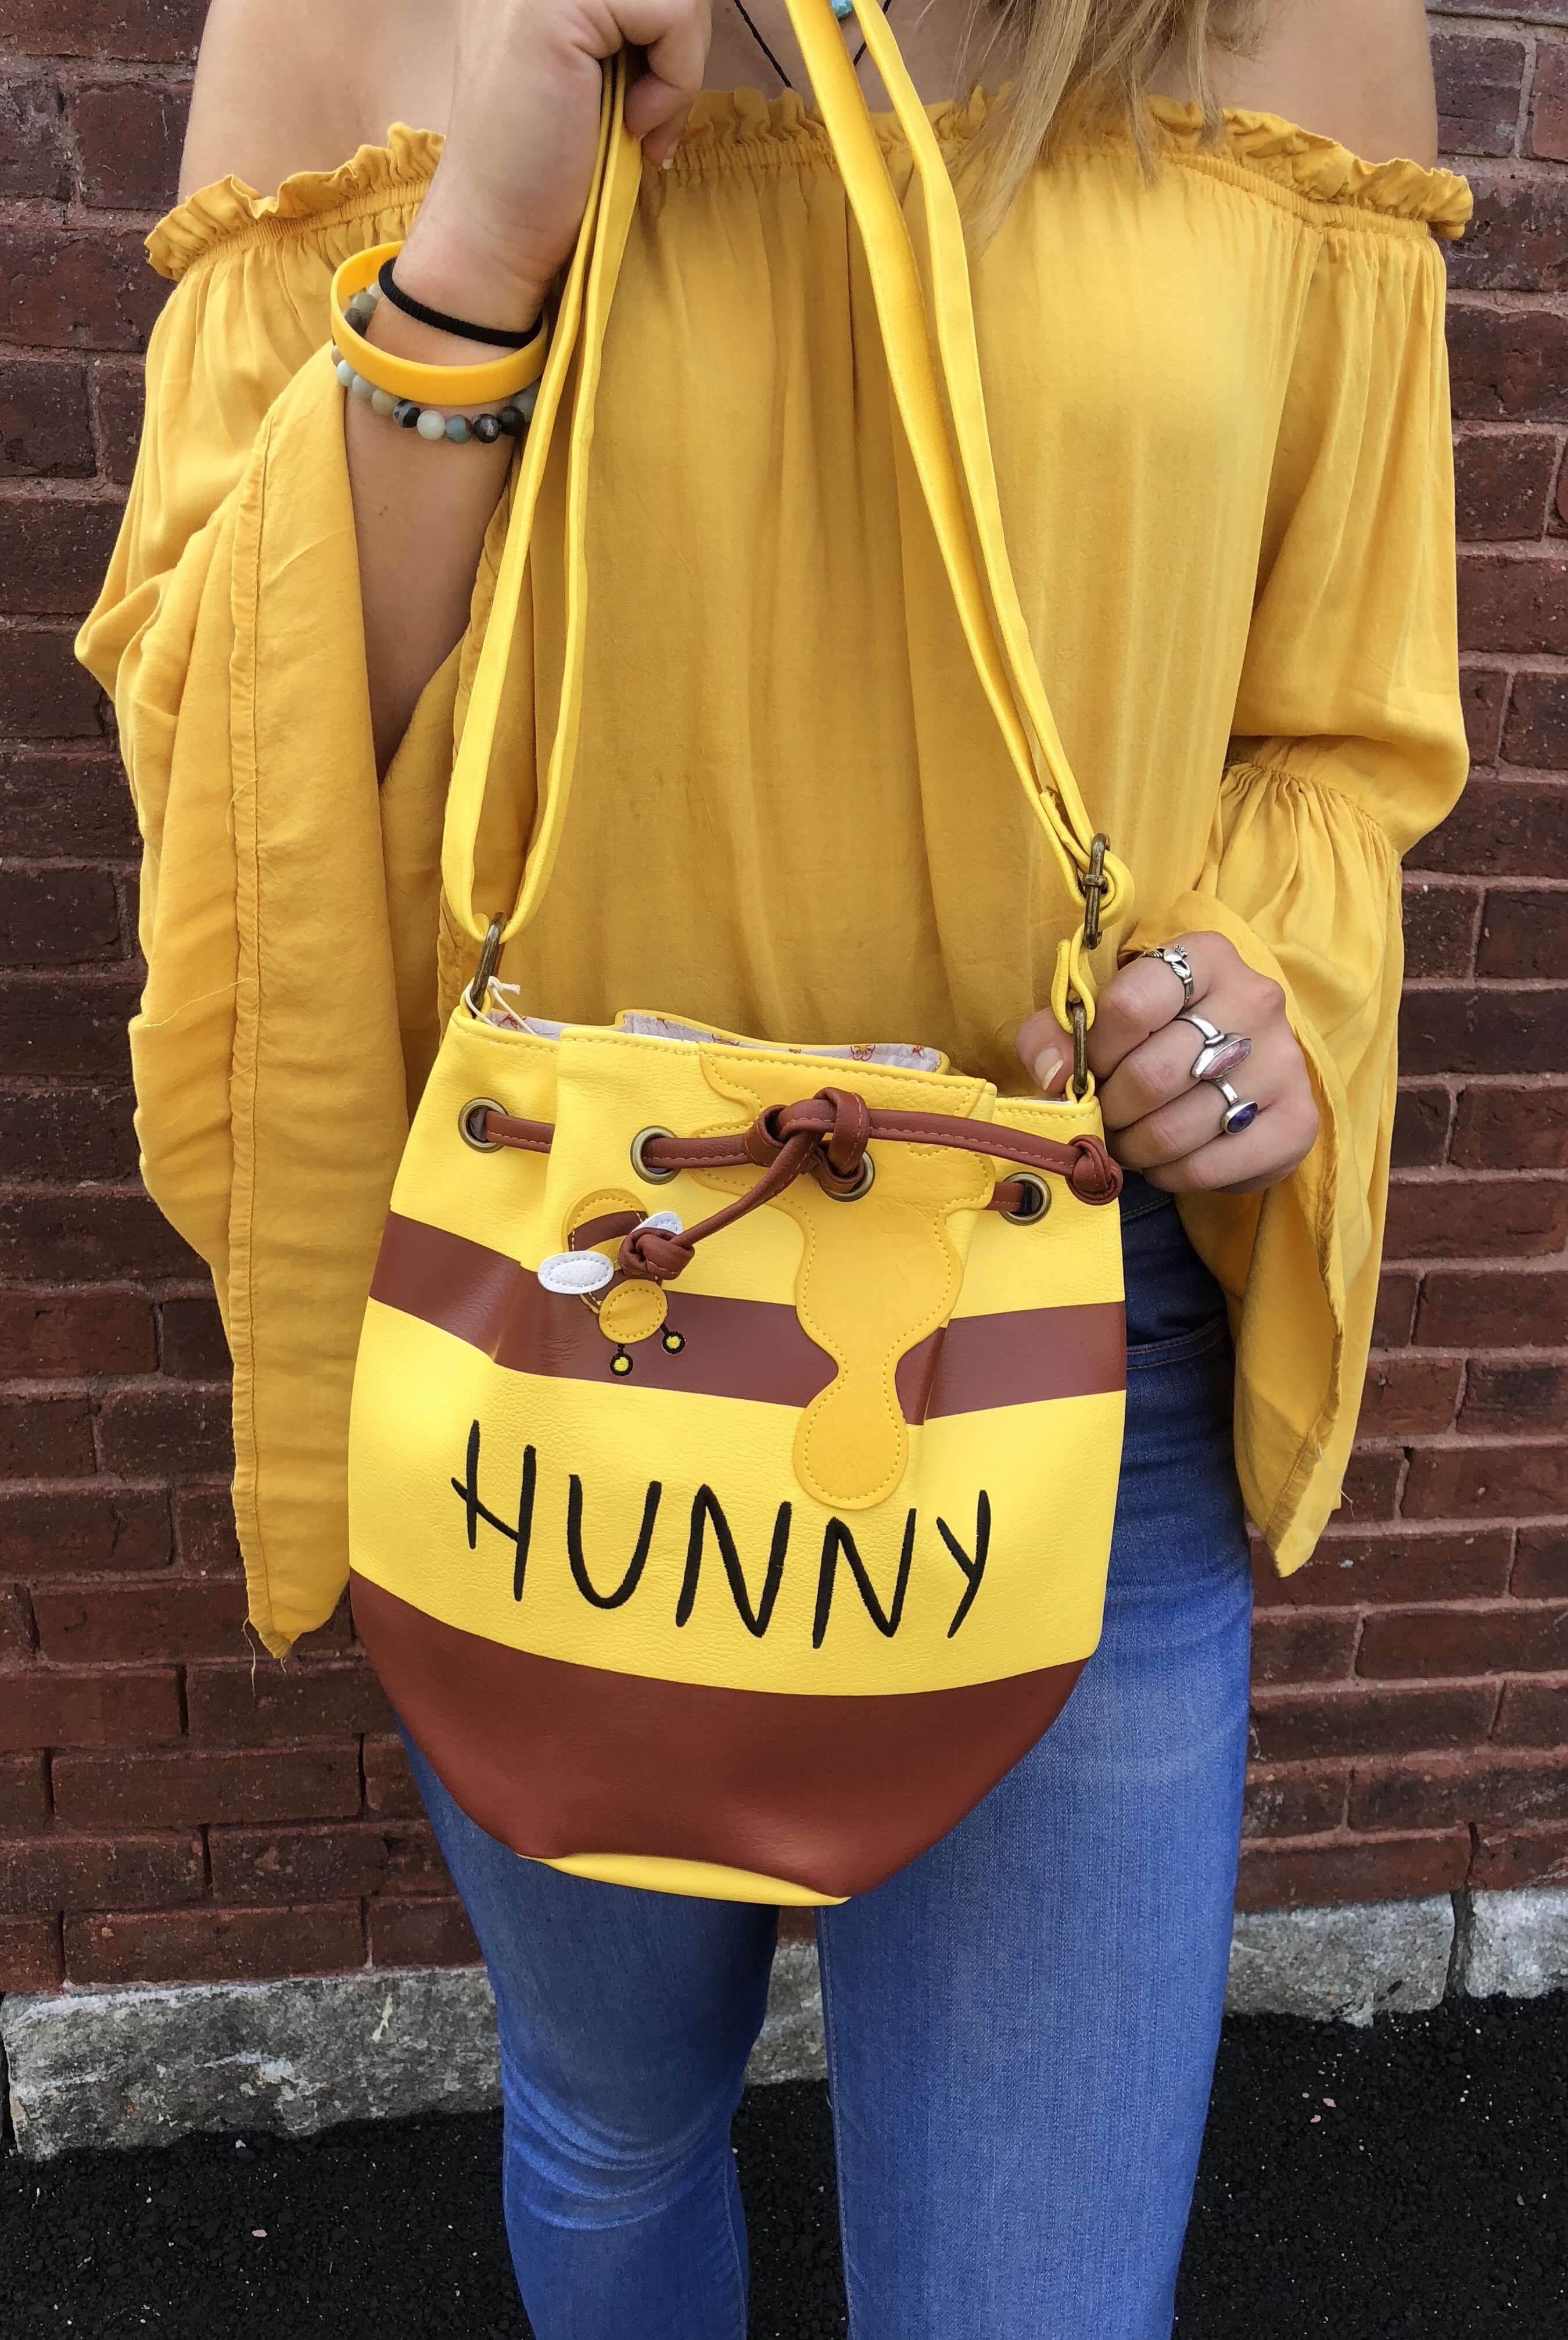 e8ff8133eed5 This Winnie The Pooh Honey Pot Bag Is Too Cute for Words